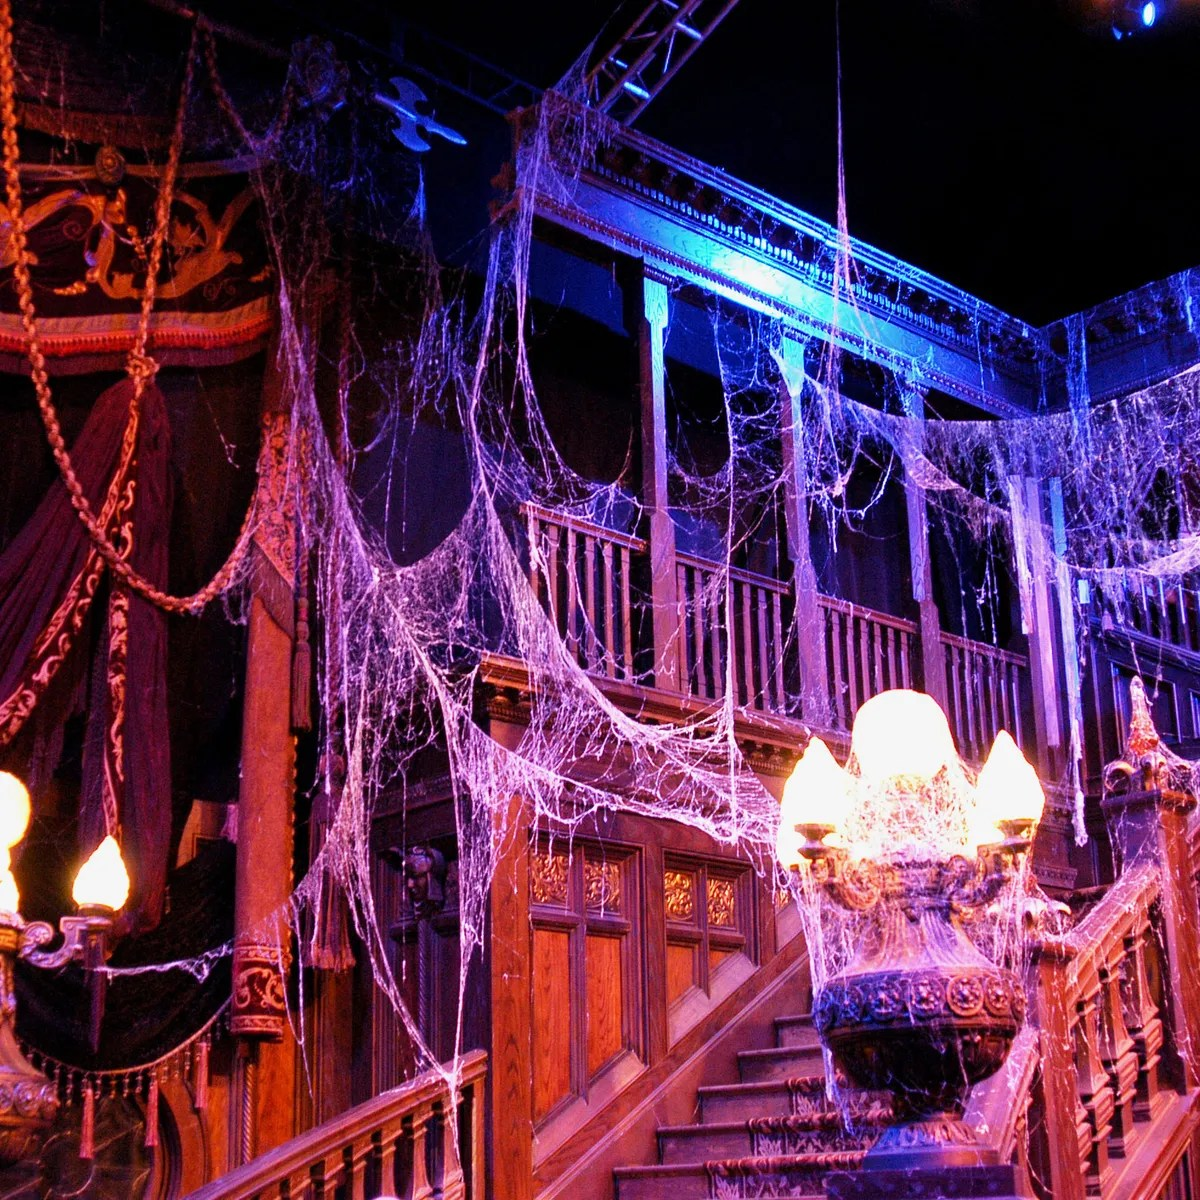 The Best Halloween Décor According To Haunted House Experts The Strategist New York Magazine